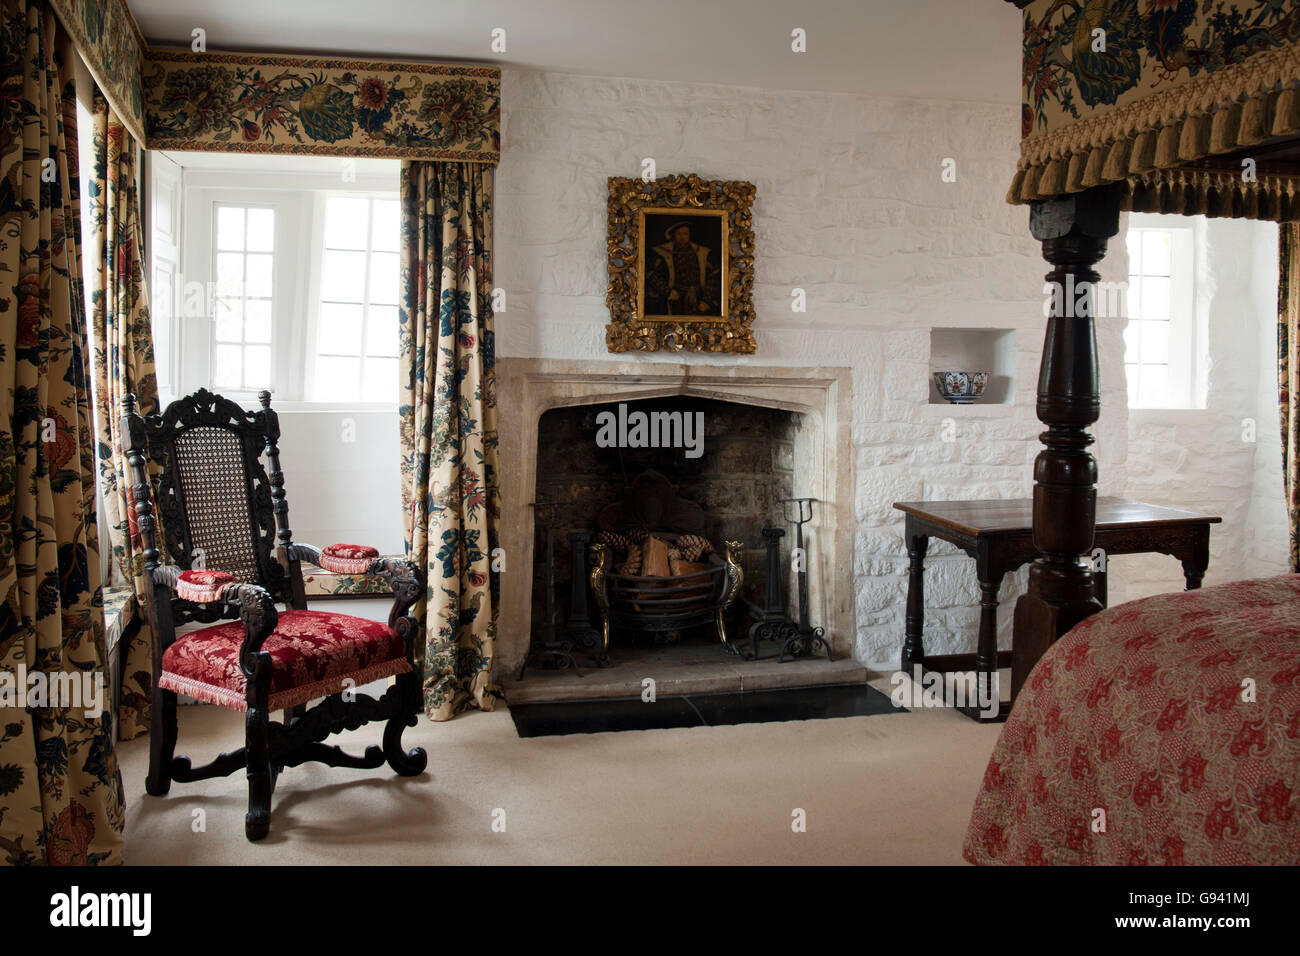 UK. A bedroom with a large traditional four poster bed. - Stock Image